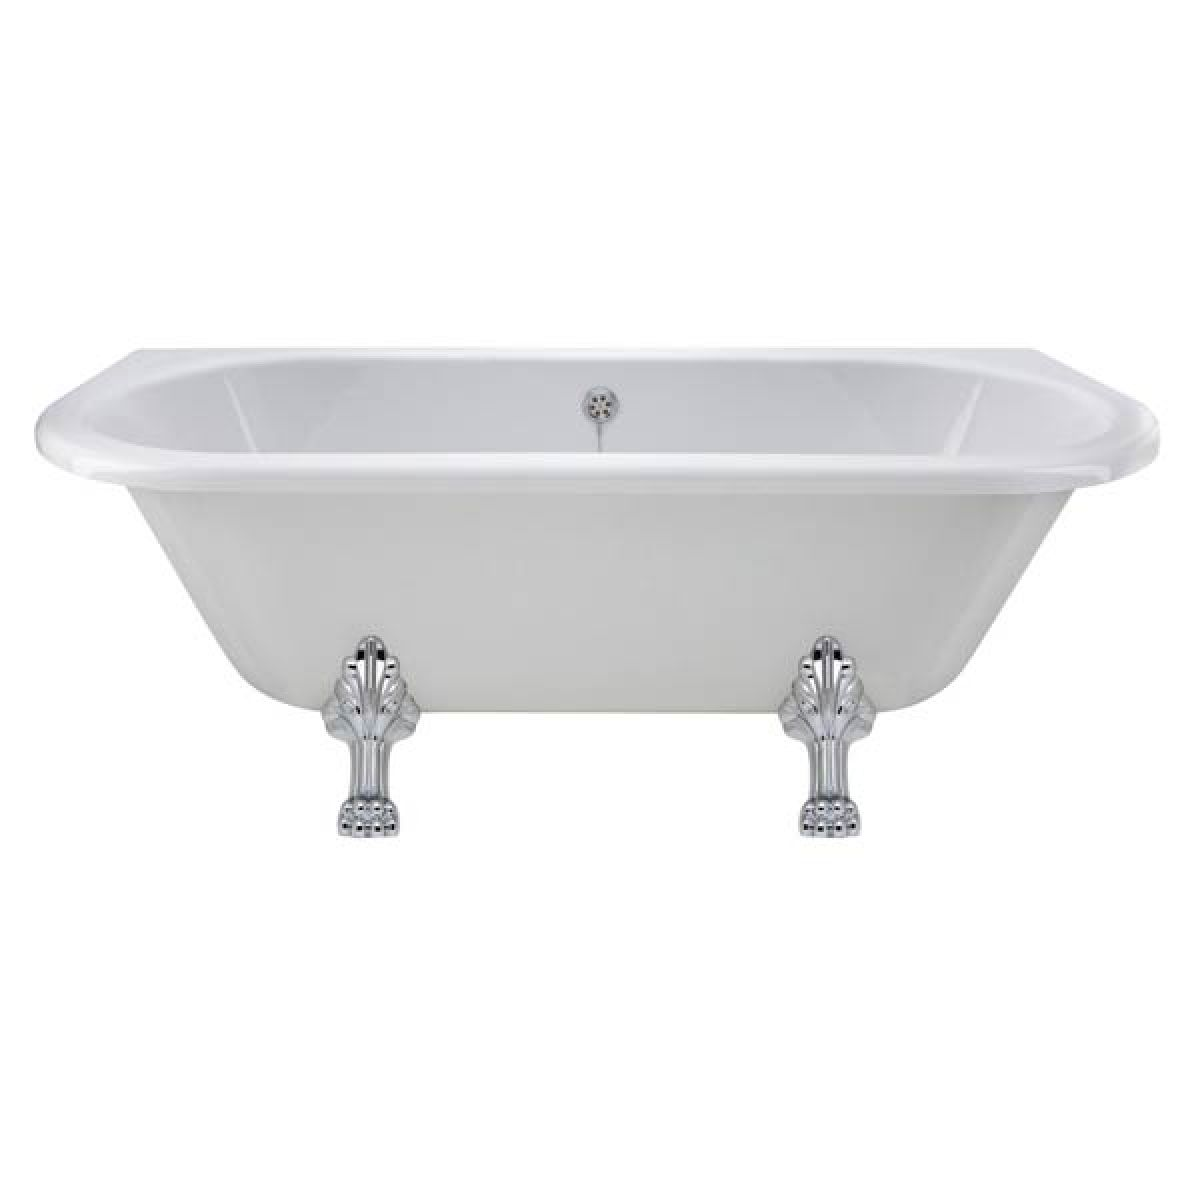 Premier Back to Wall Freestanding Bath with Pride Leg Set 1700mm